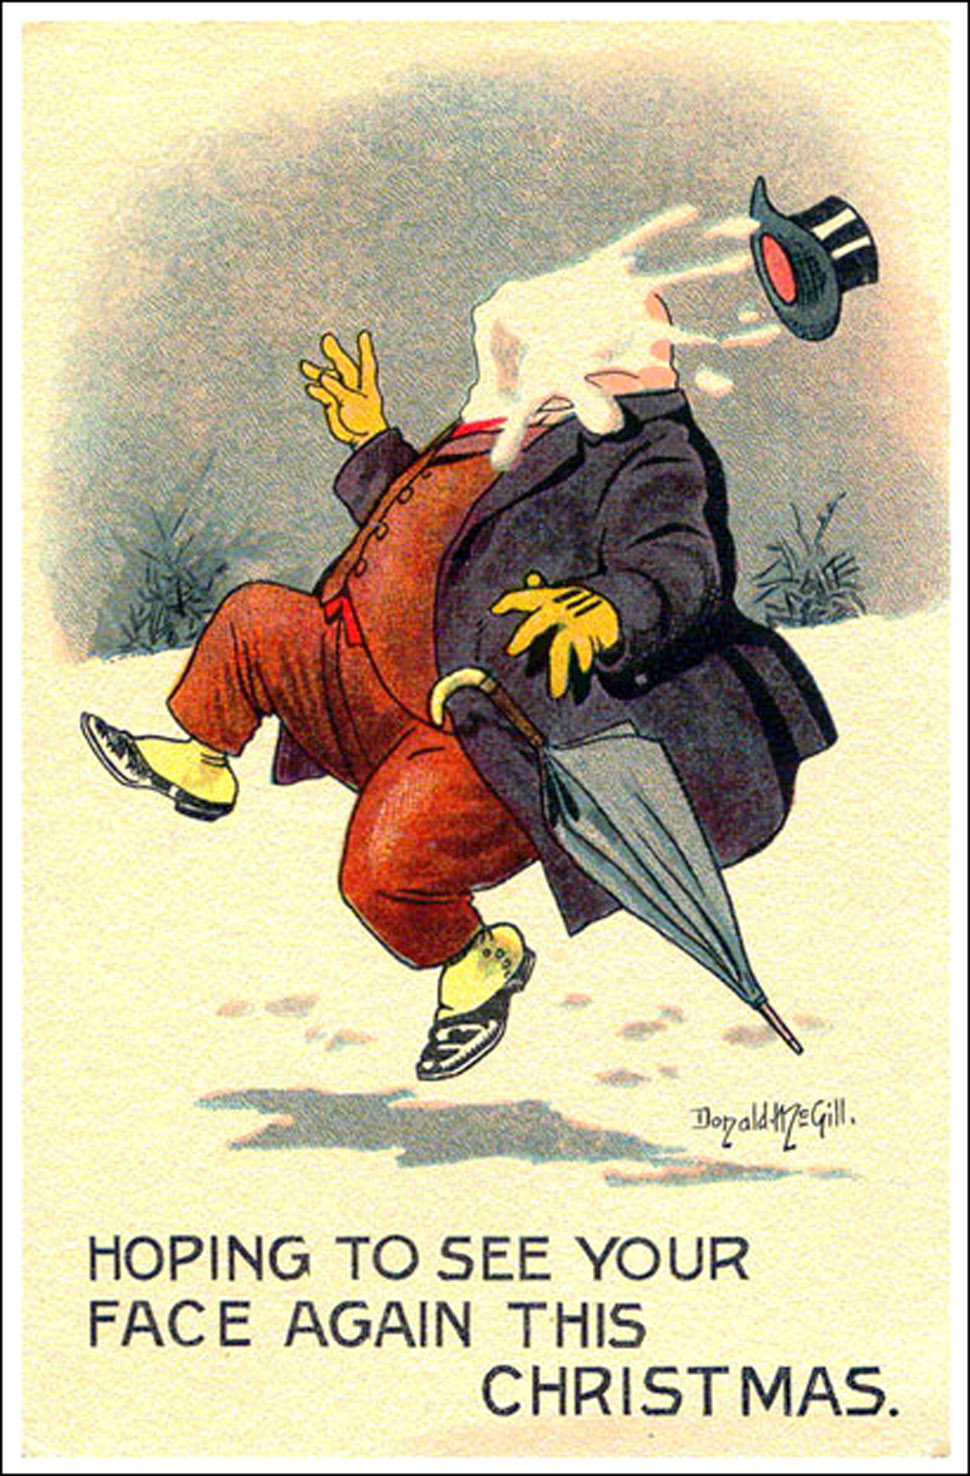 Man gets a snowball in the face - funny Christmas card by Donald mcGill